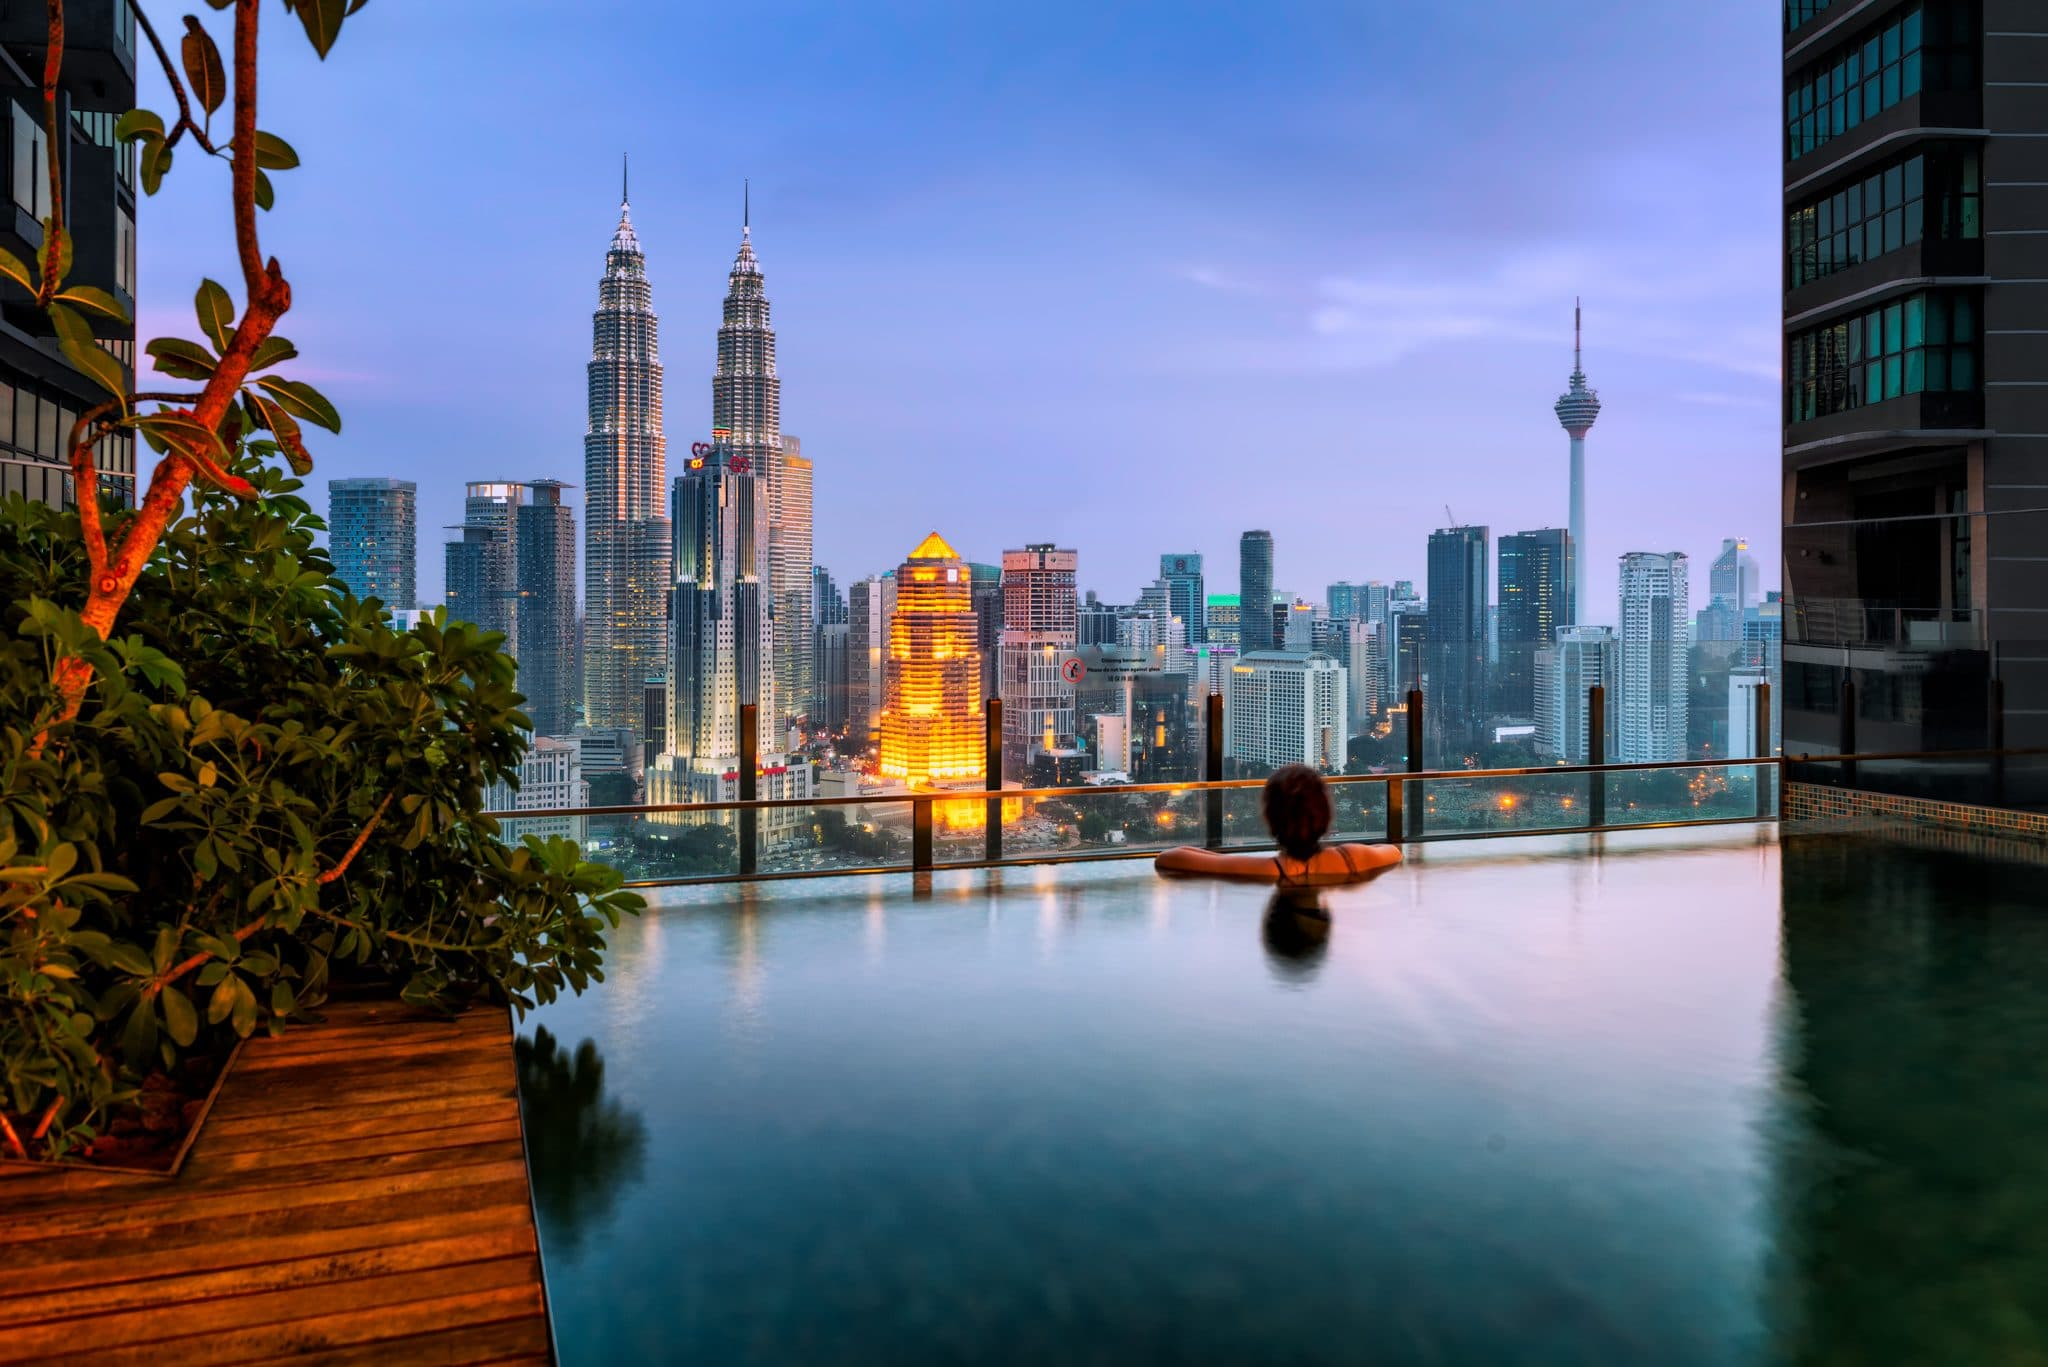 View over Kuala Lumpur city in Malaysia during a sunset from infinity pool.